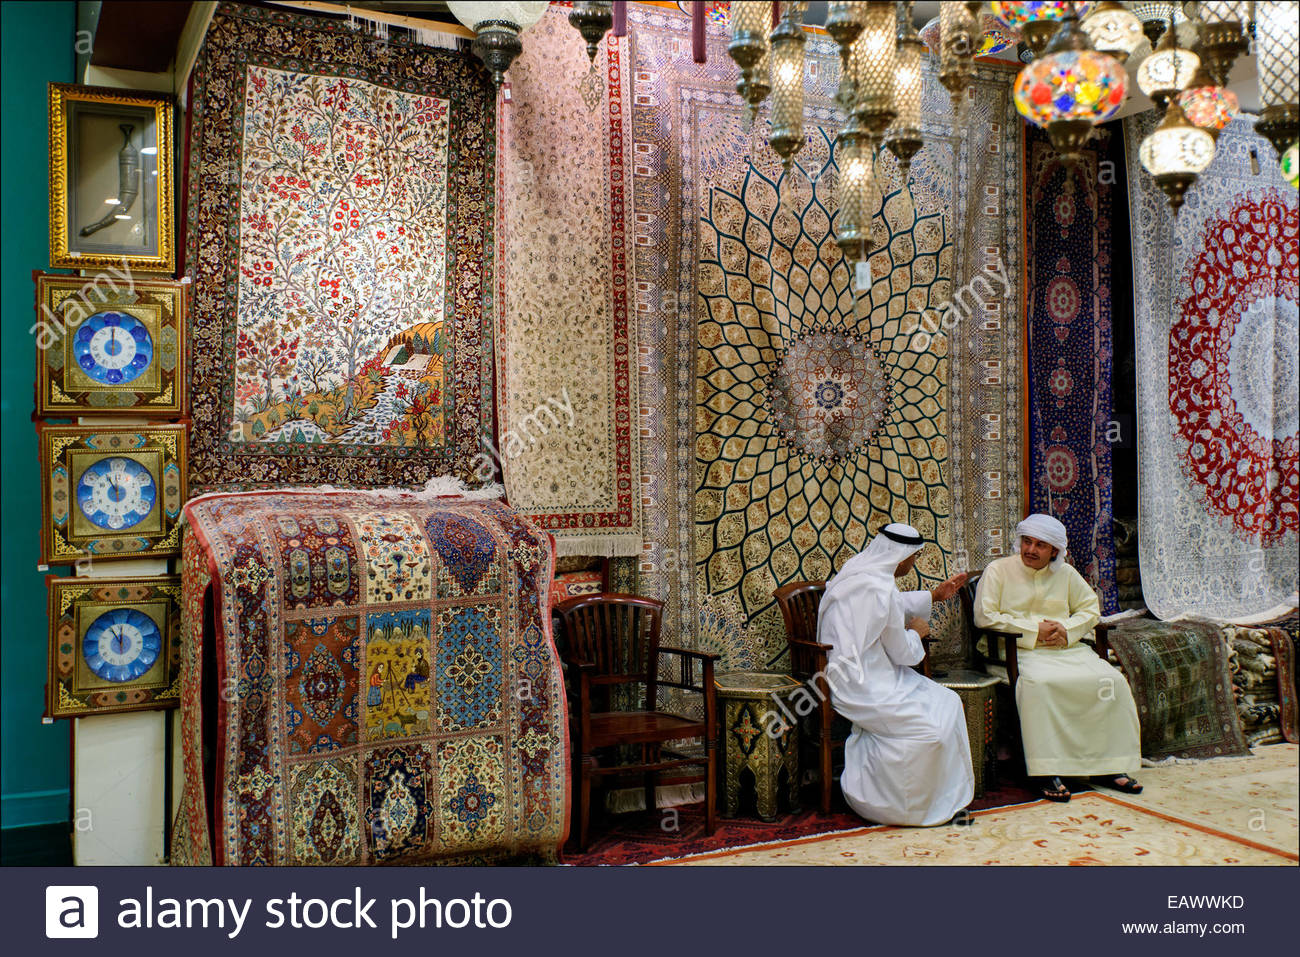 Arab merchants talk in a carpet store in the 2.4 million square foot Mall of the Emirates, opened in 2005 in what - Stock Image